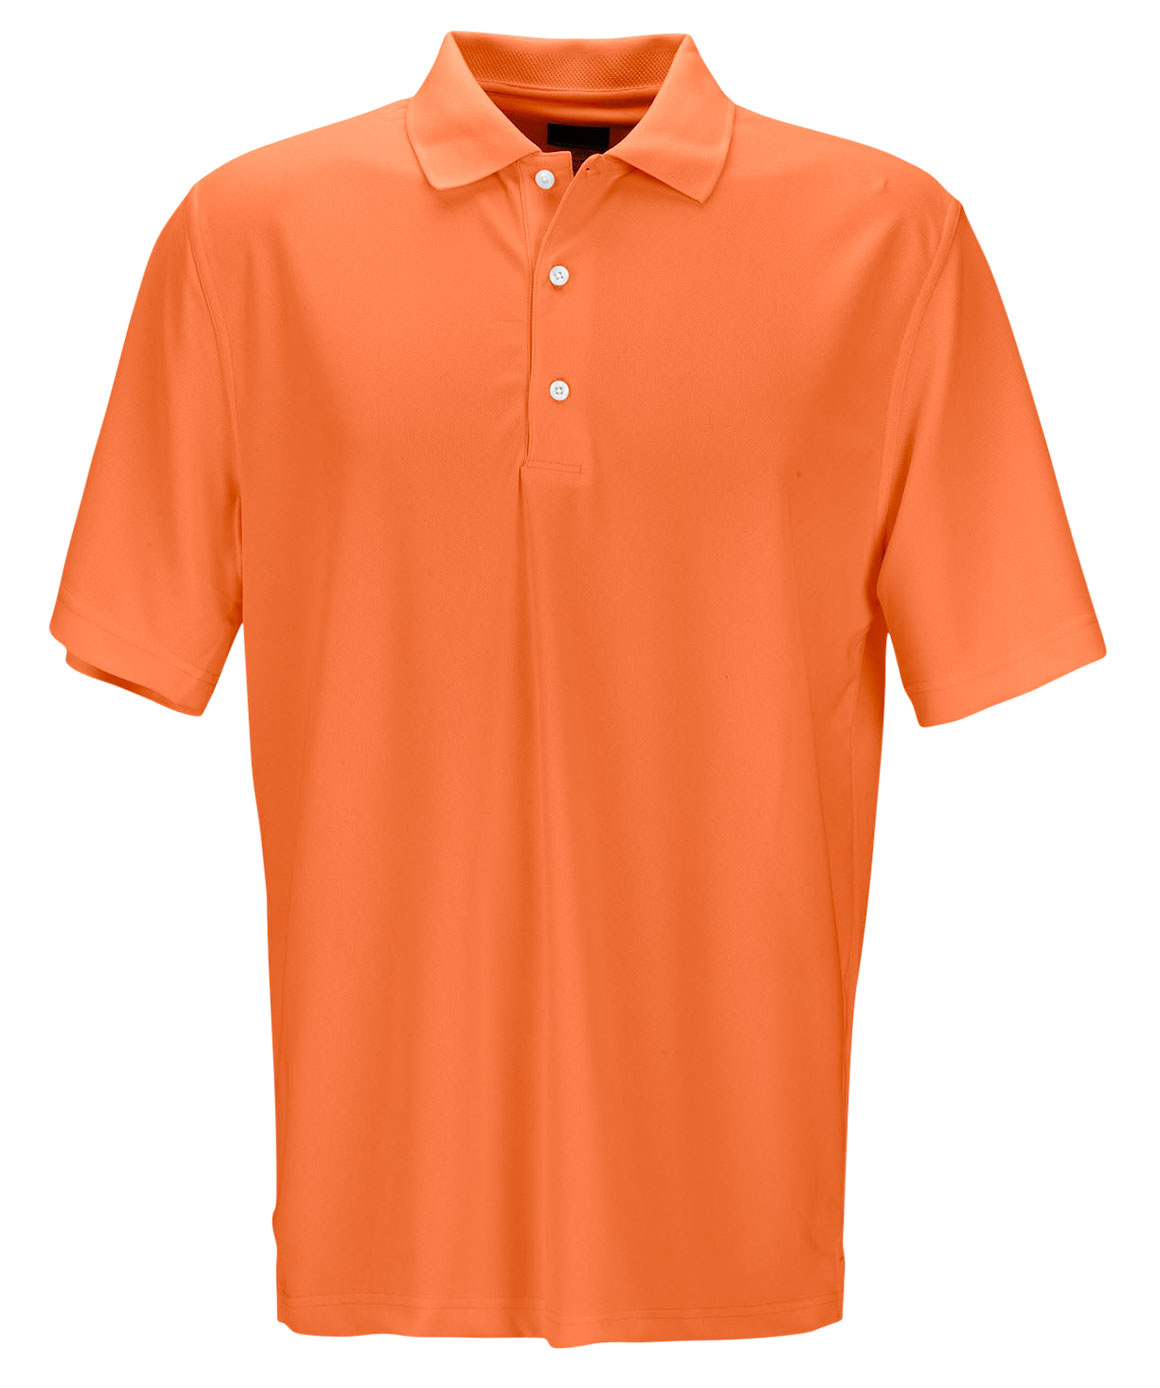 Greg Norman Mens Play Dry Performance Mesh Polo